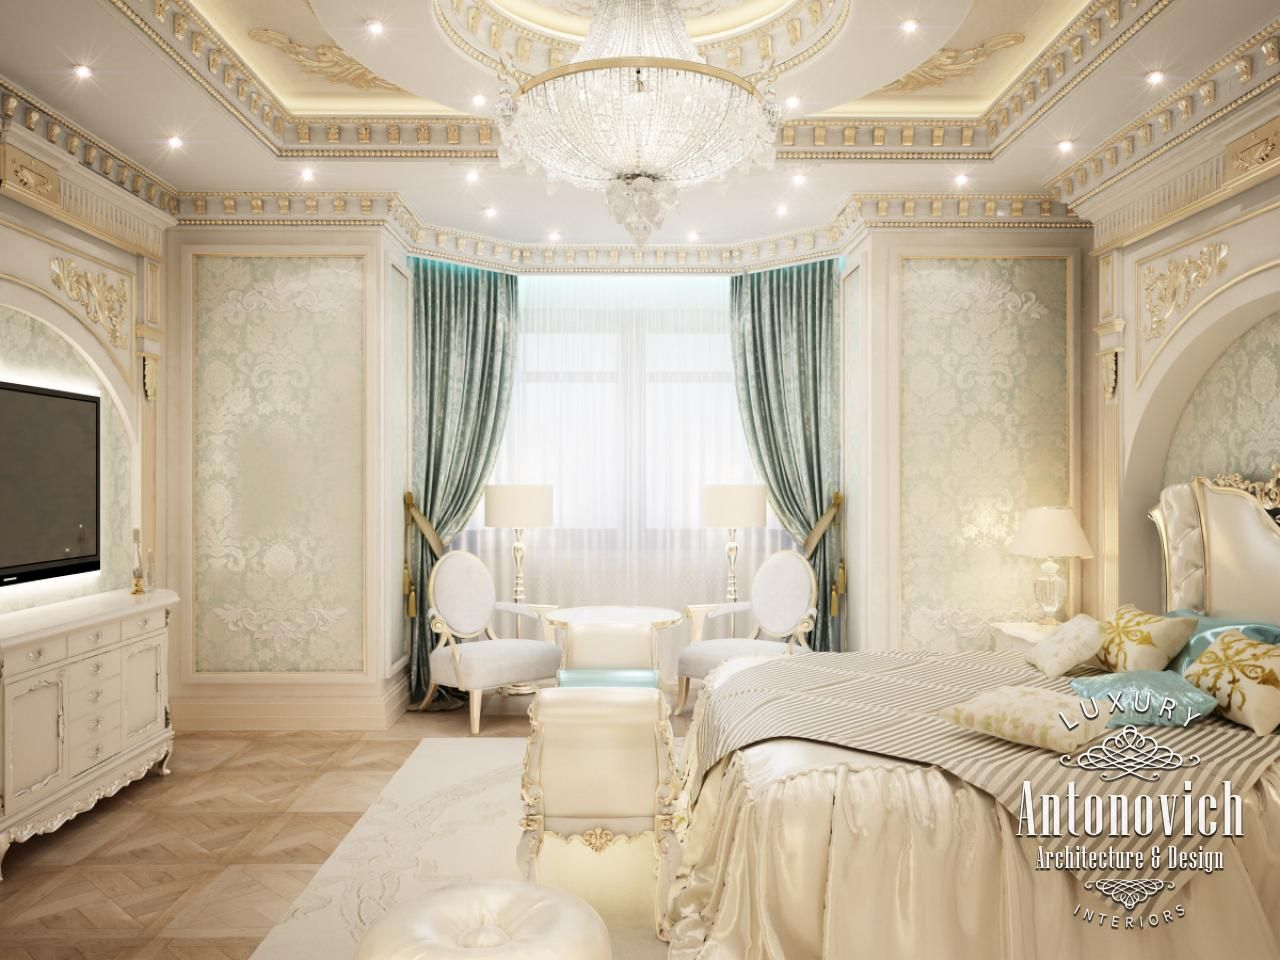 Bedroom Design In Dubai, Gorgeous Bedroom, Photo 2